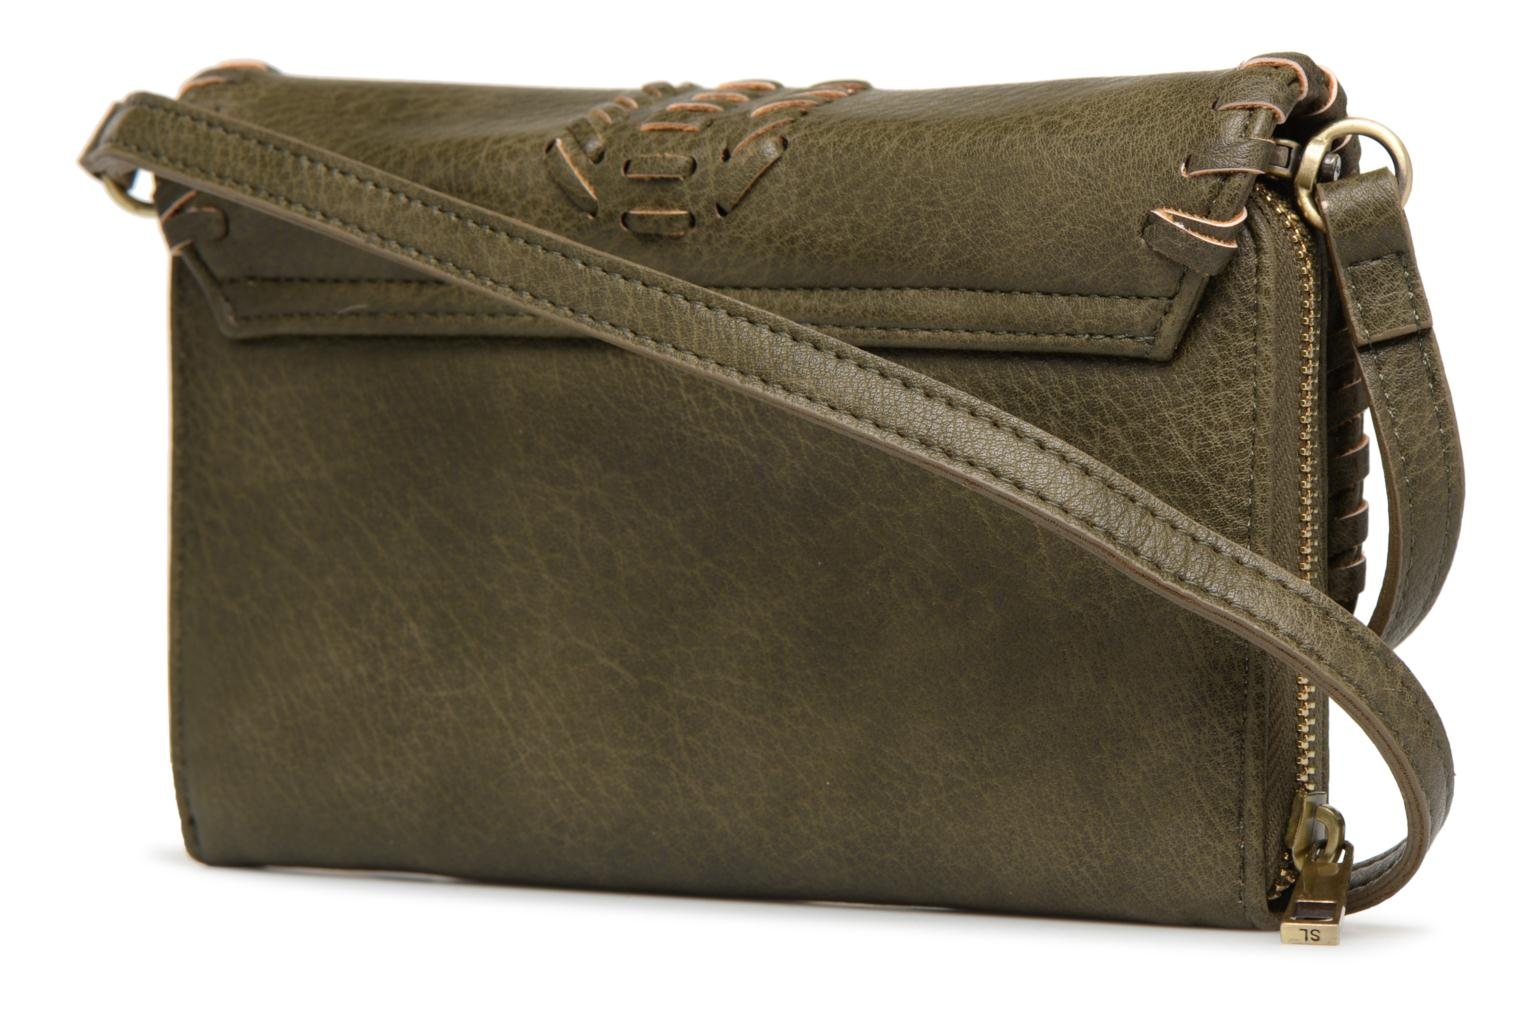 stitch Level Olive Saddle Street crossbody 4wfYpBBqx